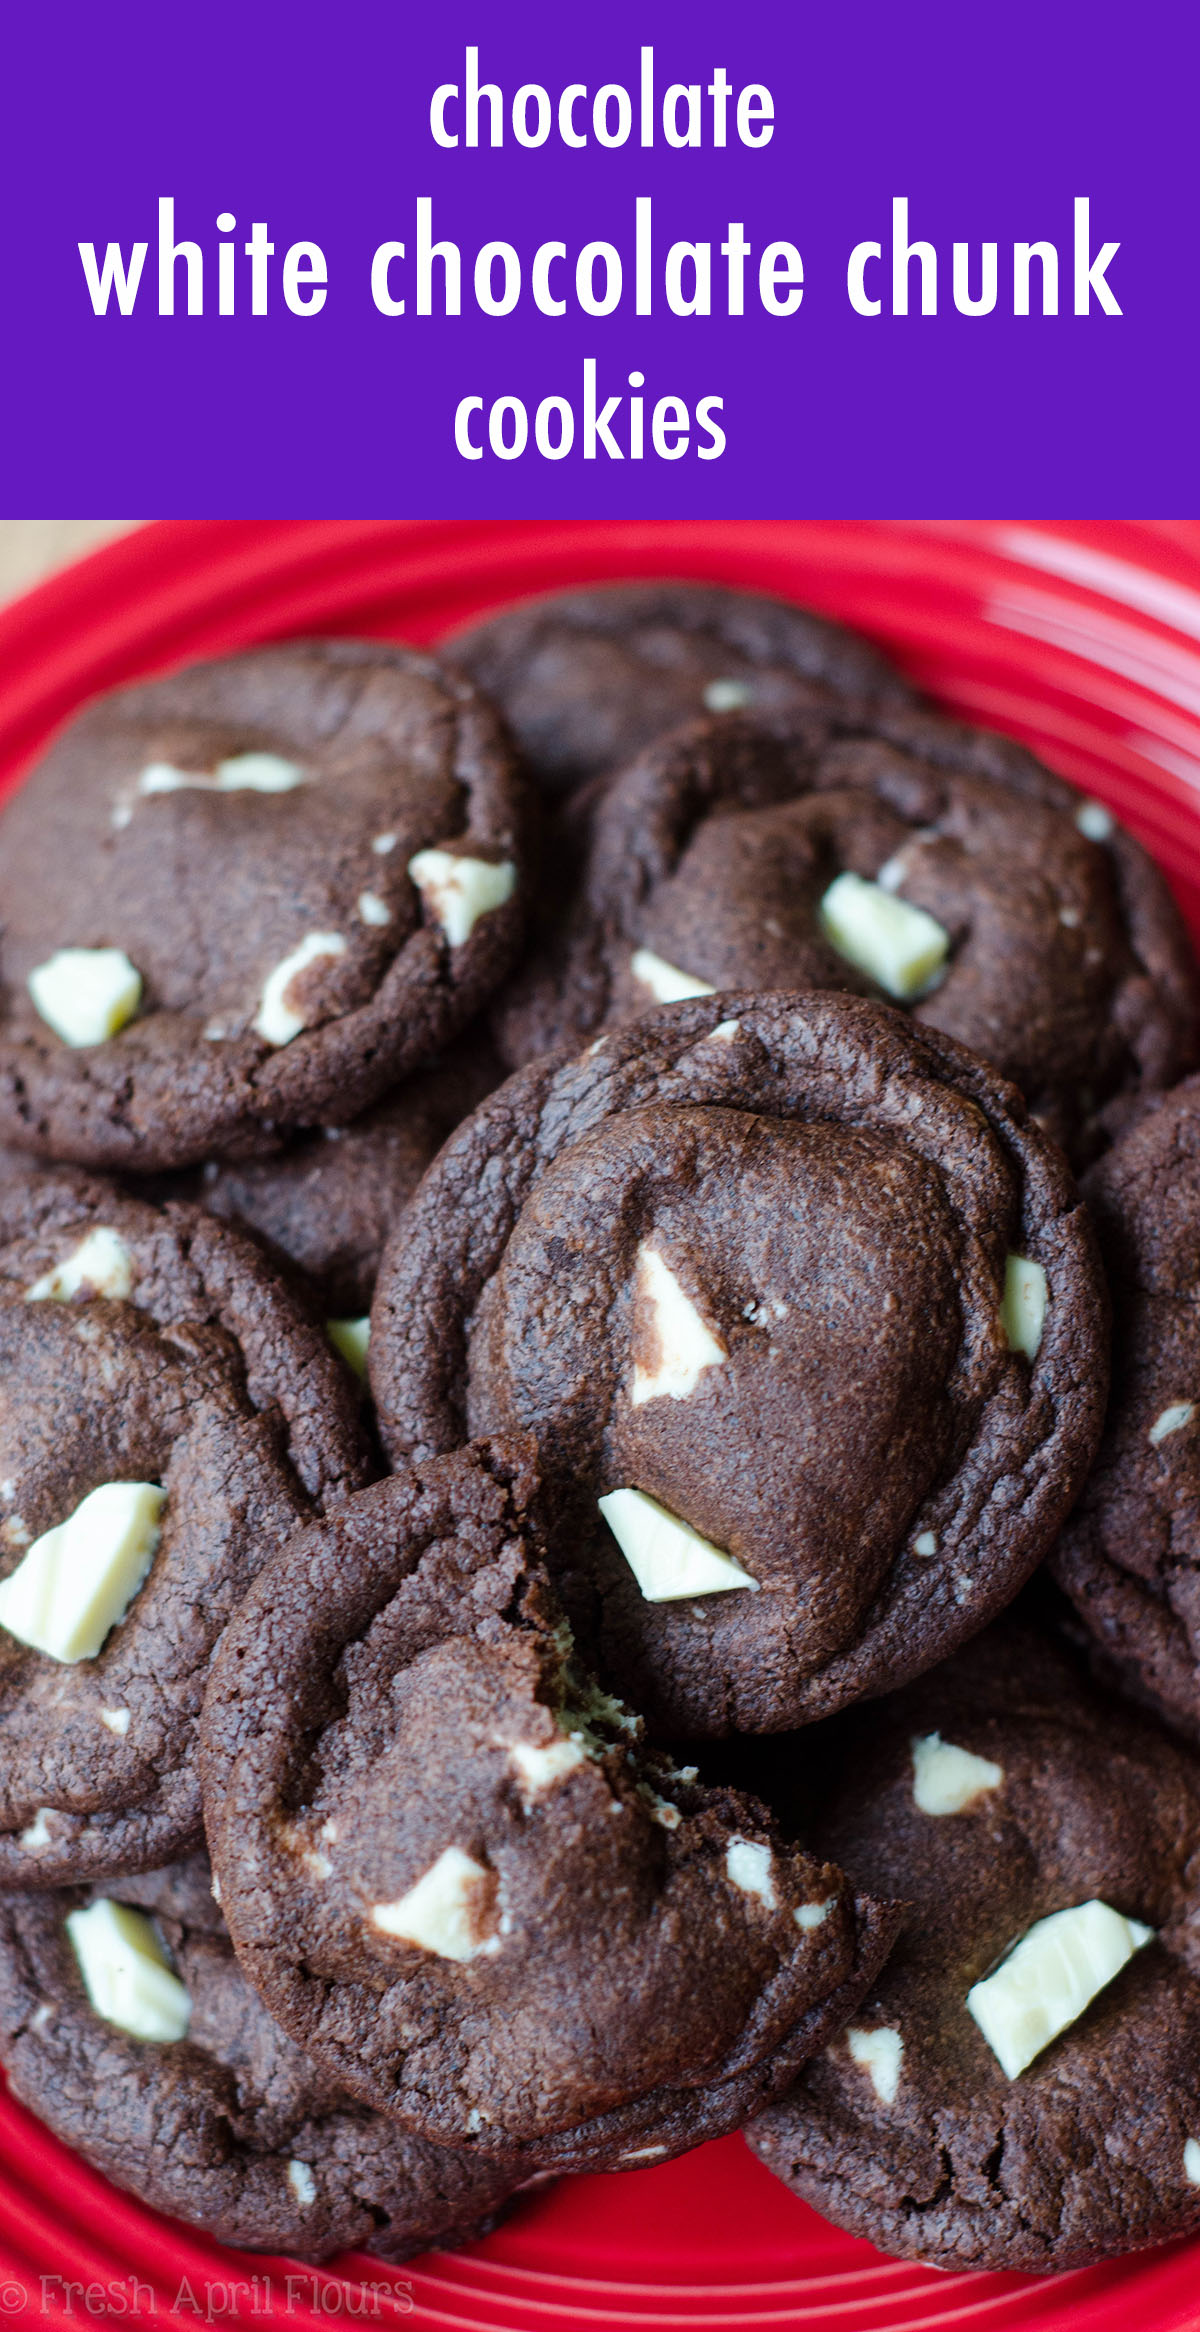 Chocolate White Chocolate Chunk Cookies: Simple chocolate cookies filled with creamy chunks of white chocolate.